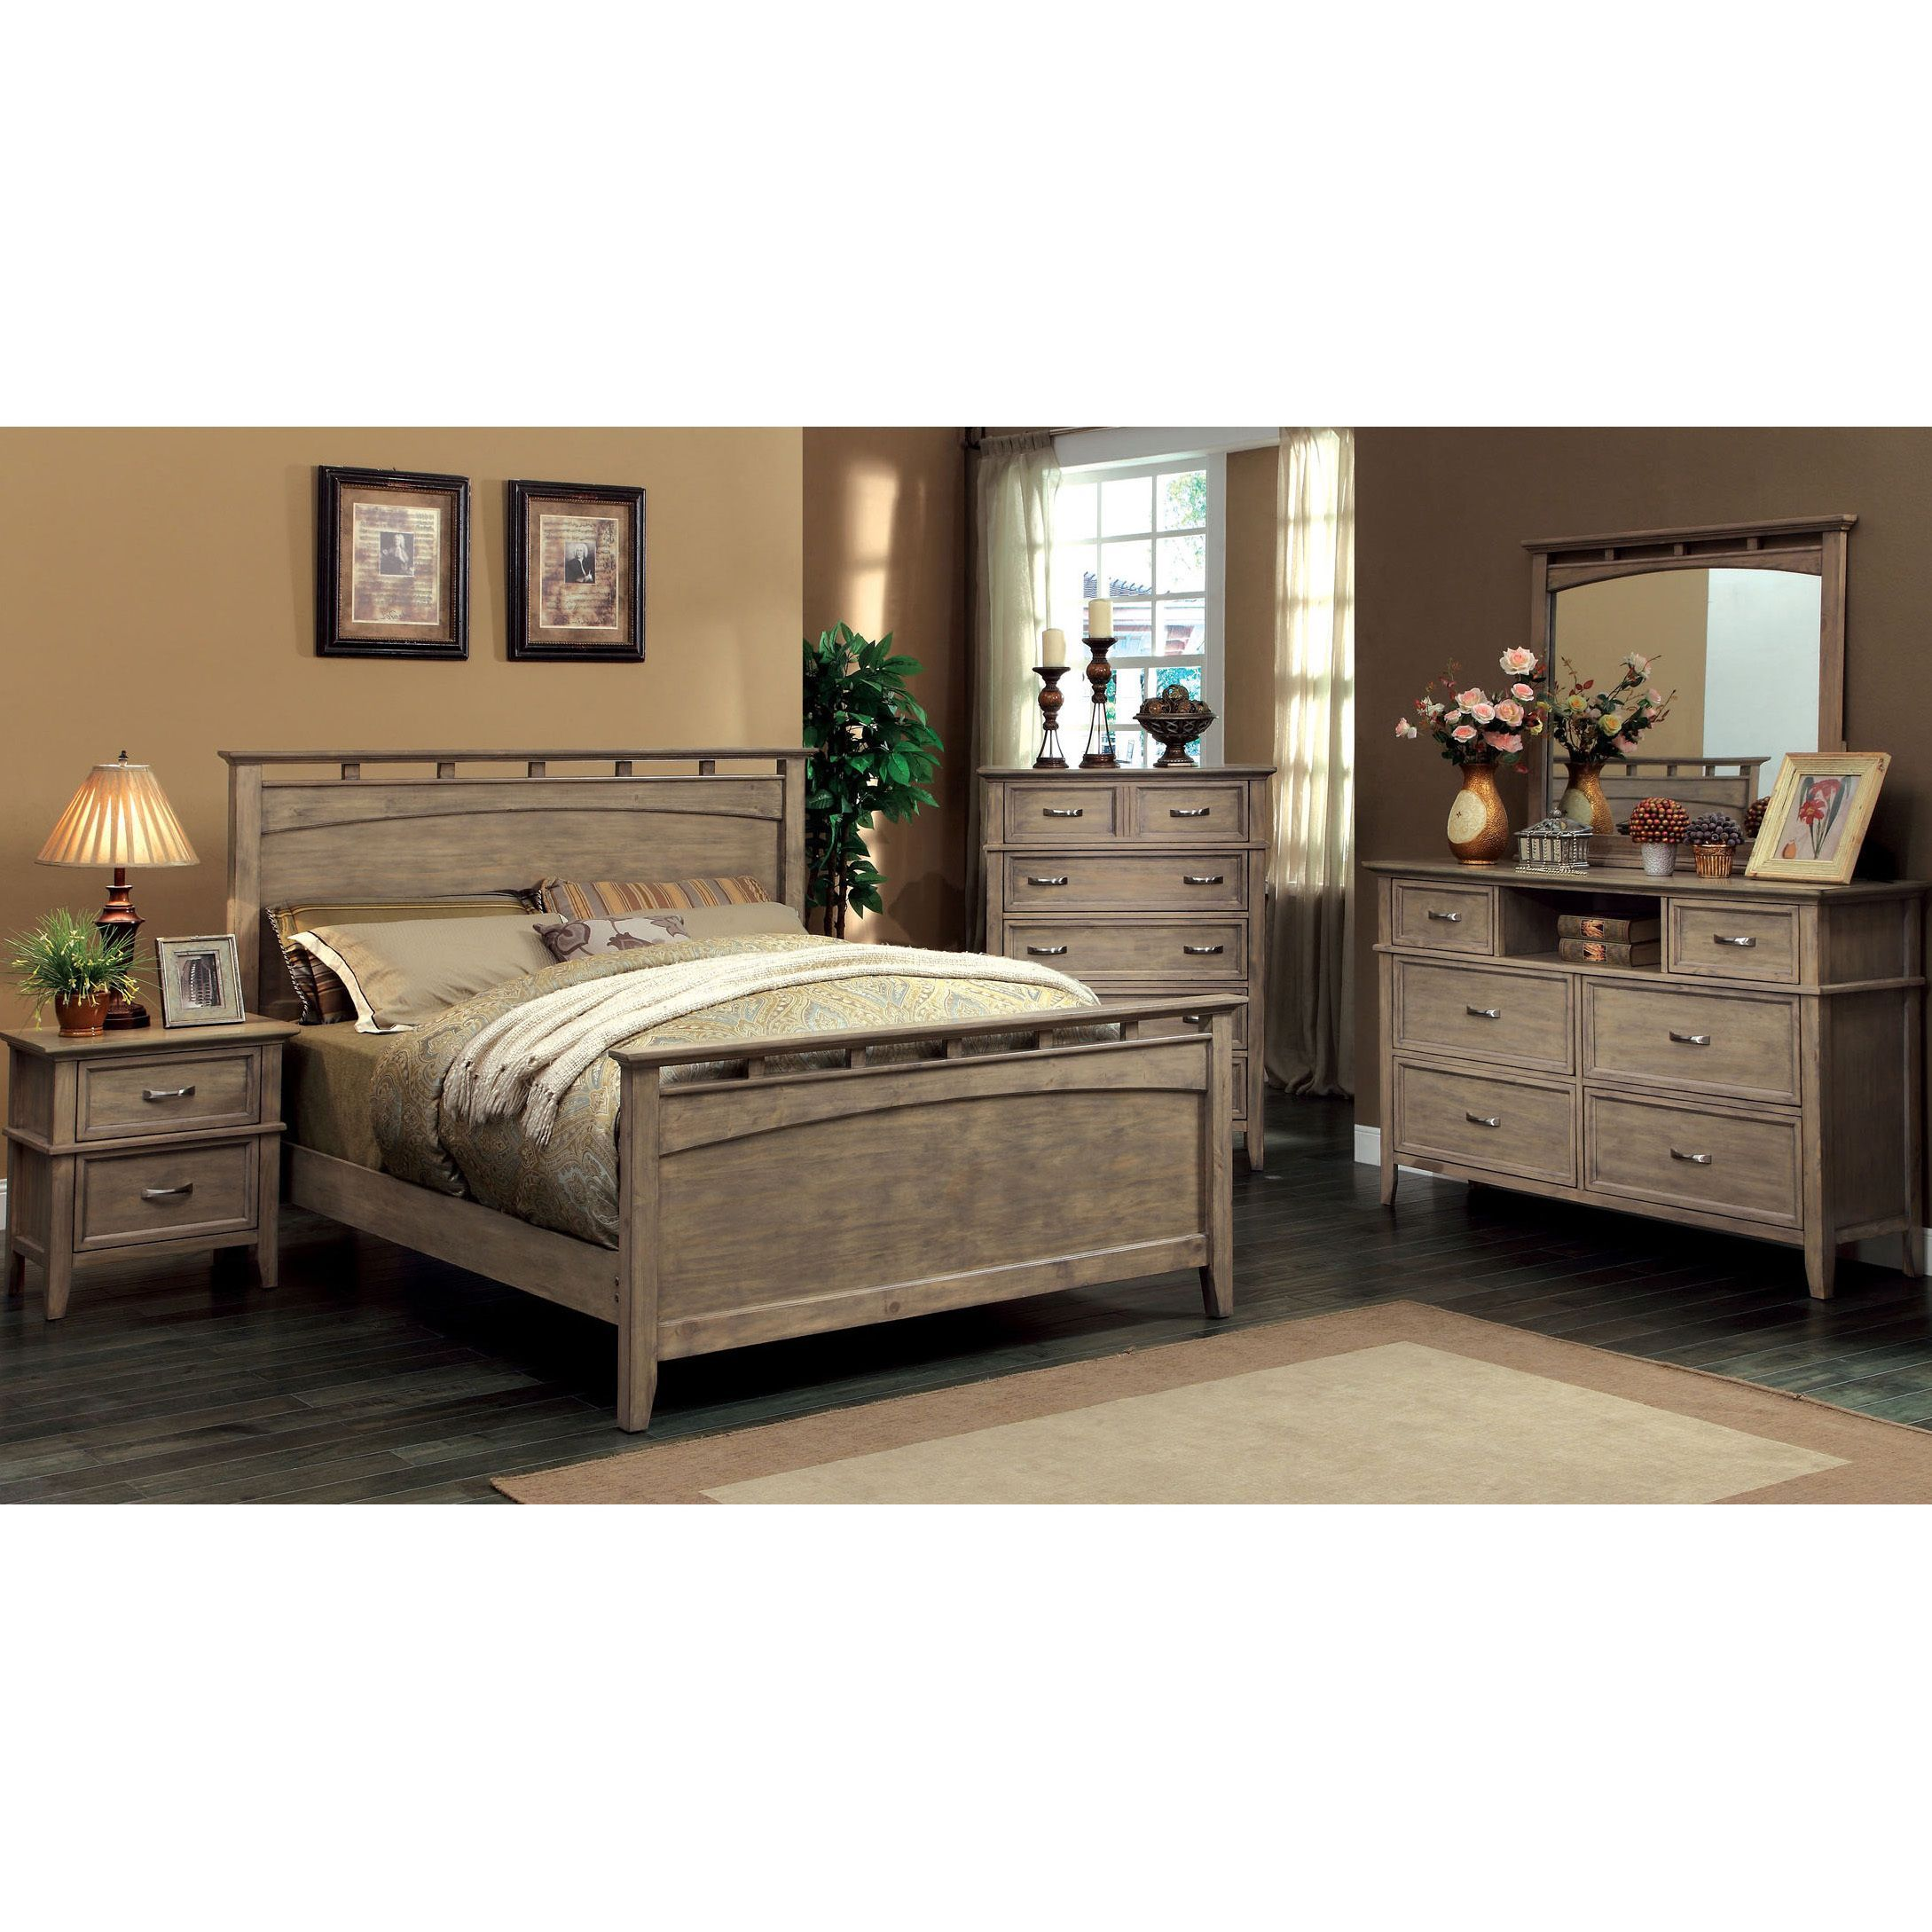 Overstock Com Online Shopping Bedding Furniture Electronics Jewelry Clothing More Bedroom Sets Queen Queen Sized Bedroom Sets Oak Beds